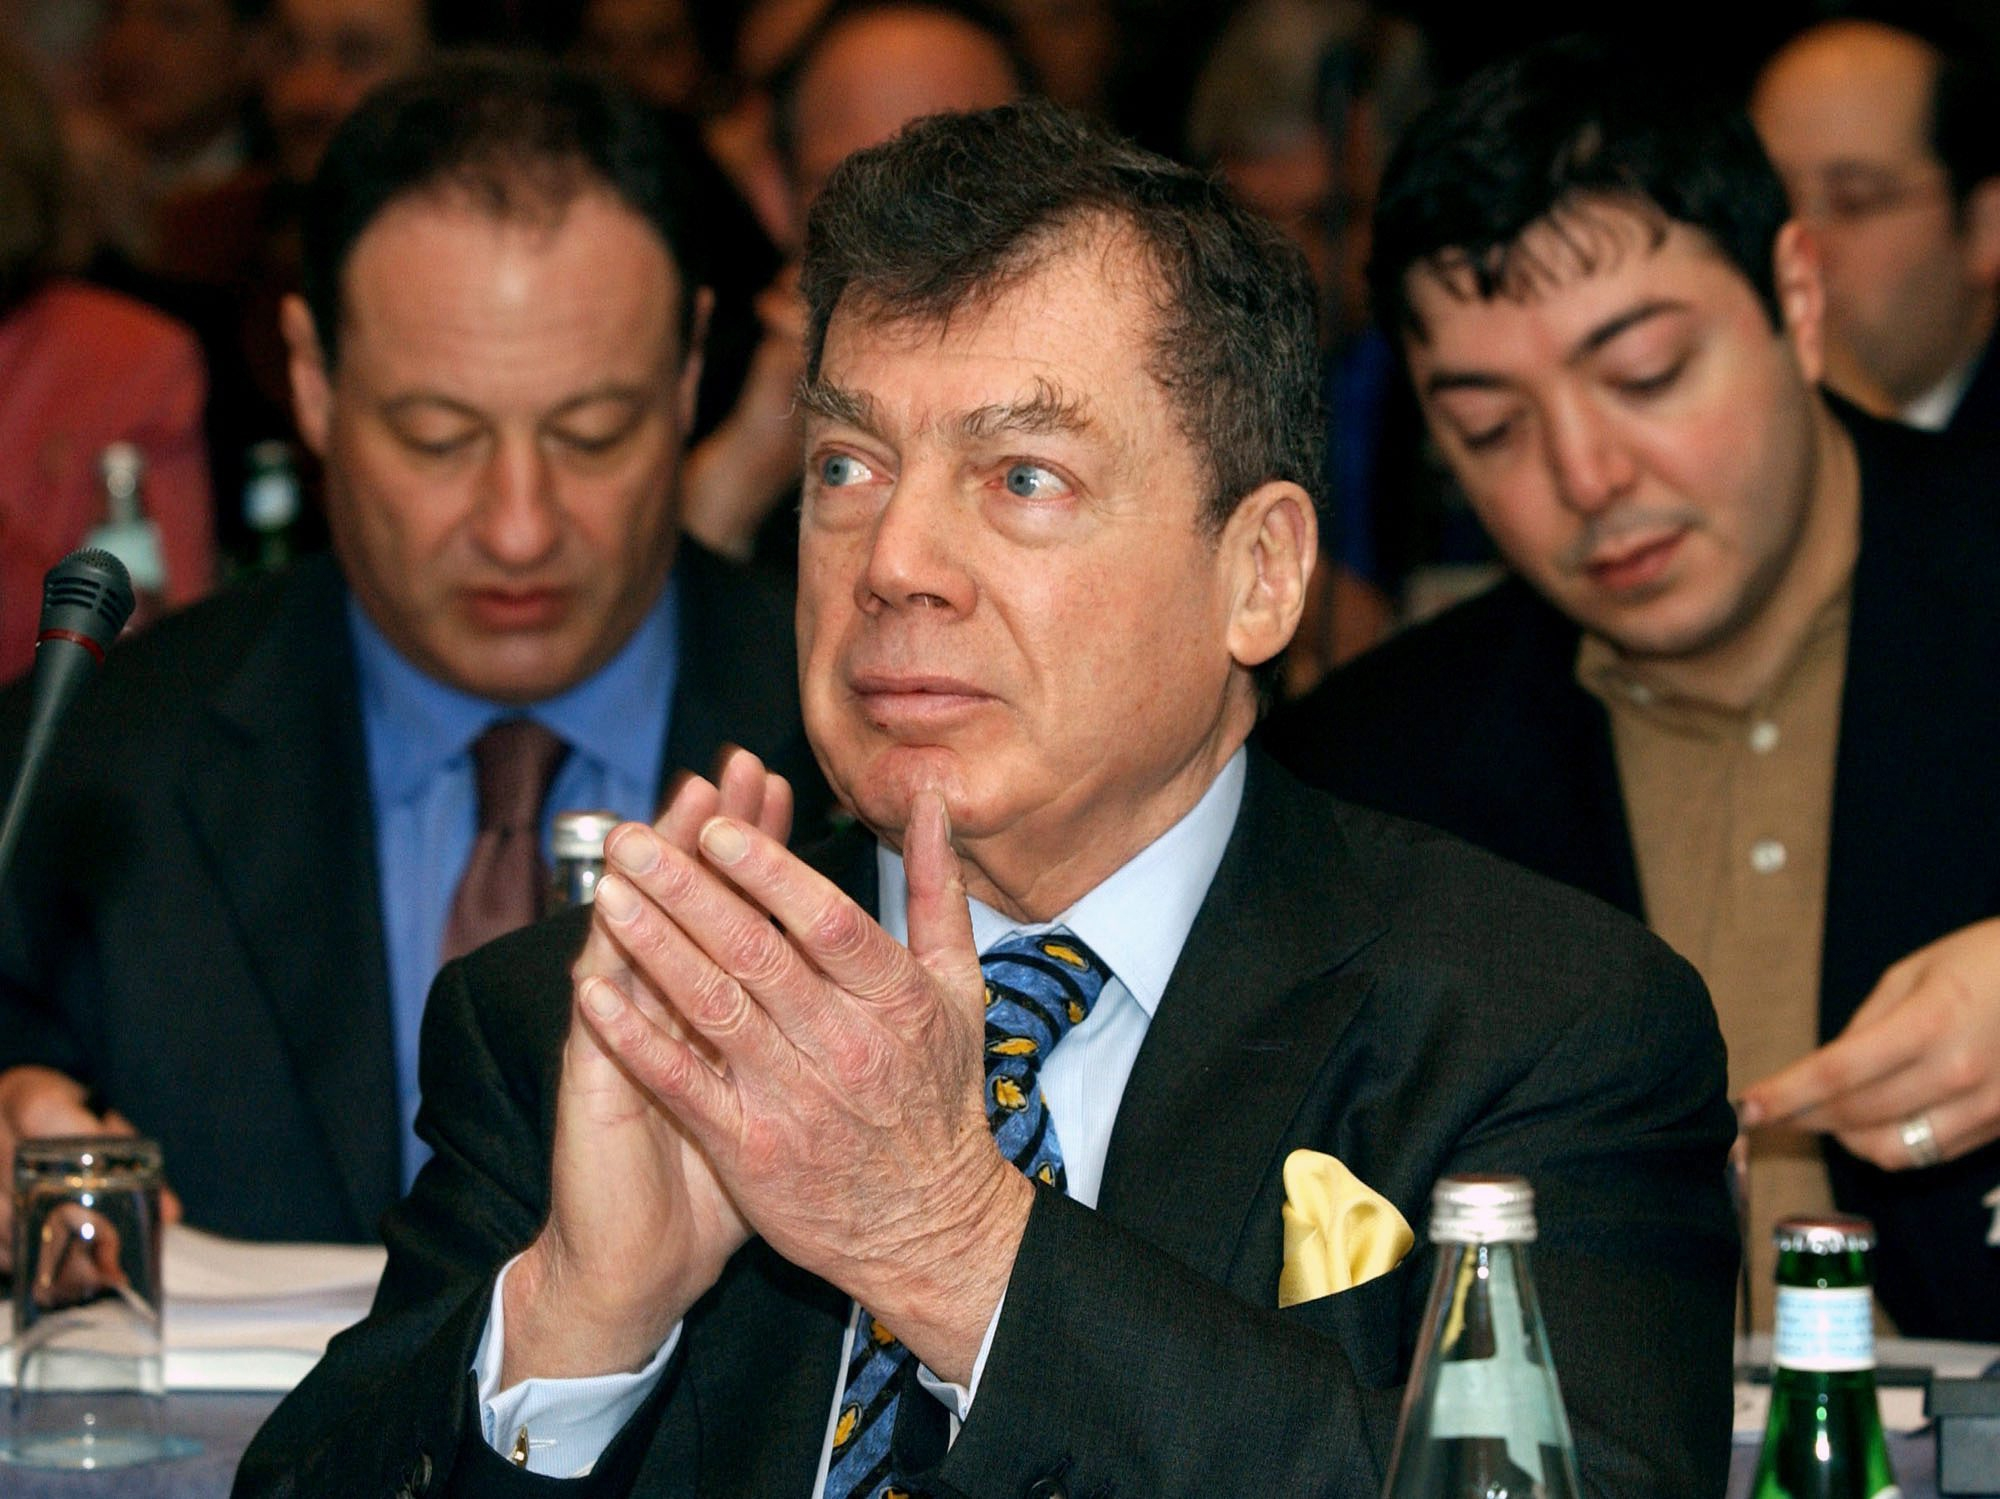 The late Canadian billionaire Edgar Bronfman Sr., seen at a 2005 meeting of the World Jewish Congress in Brussels, once described NXIVM as a cult. (Thierry Charlier/Associated Press)